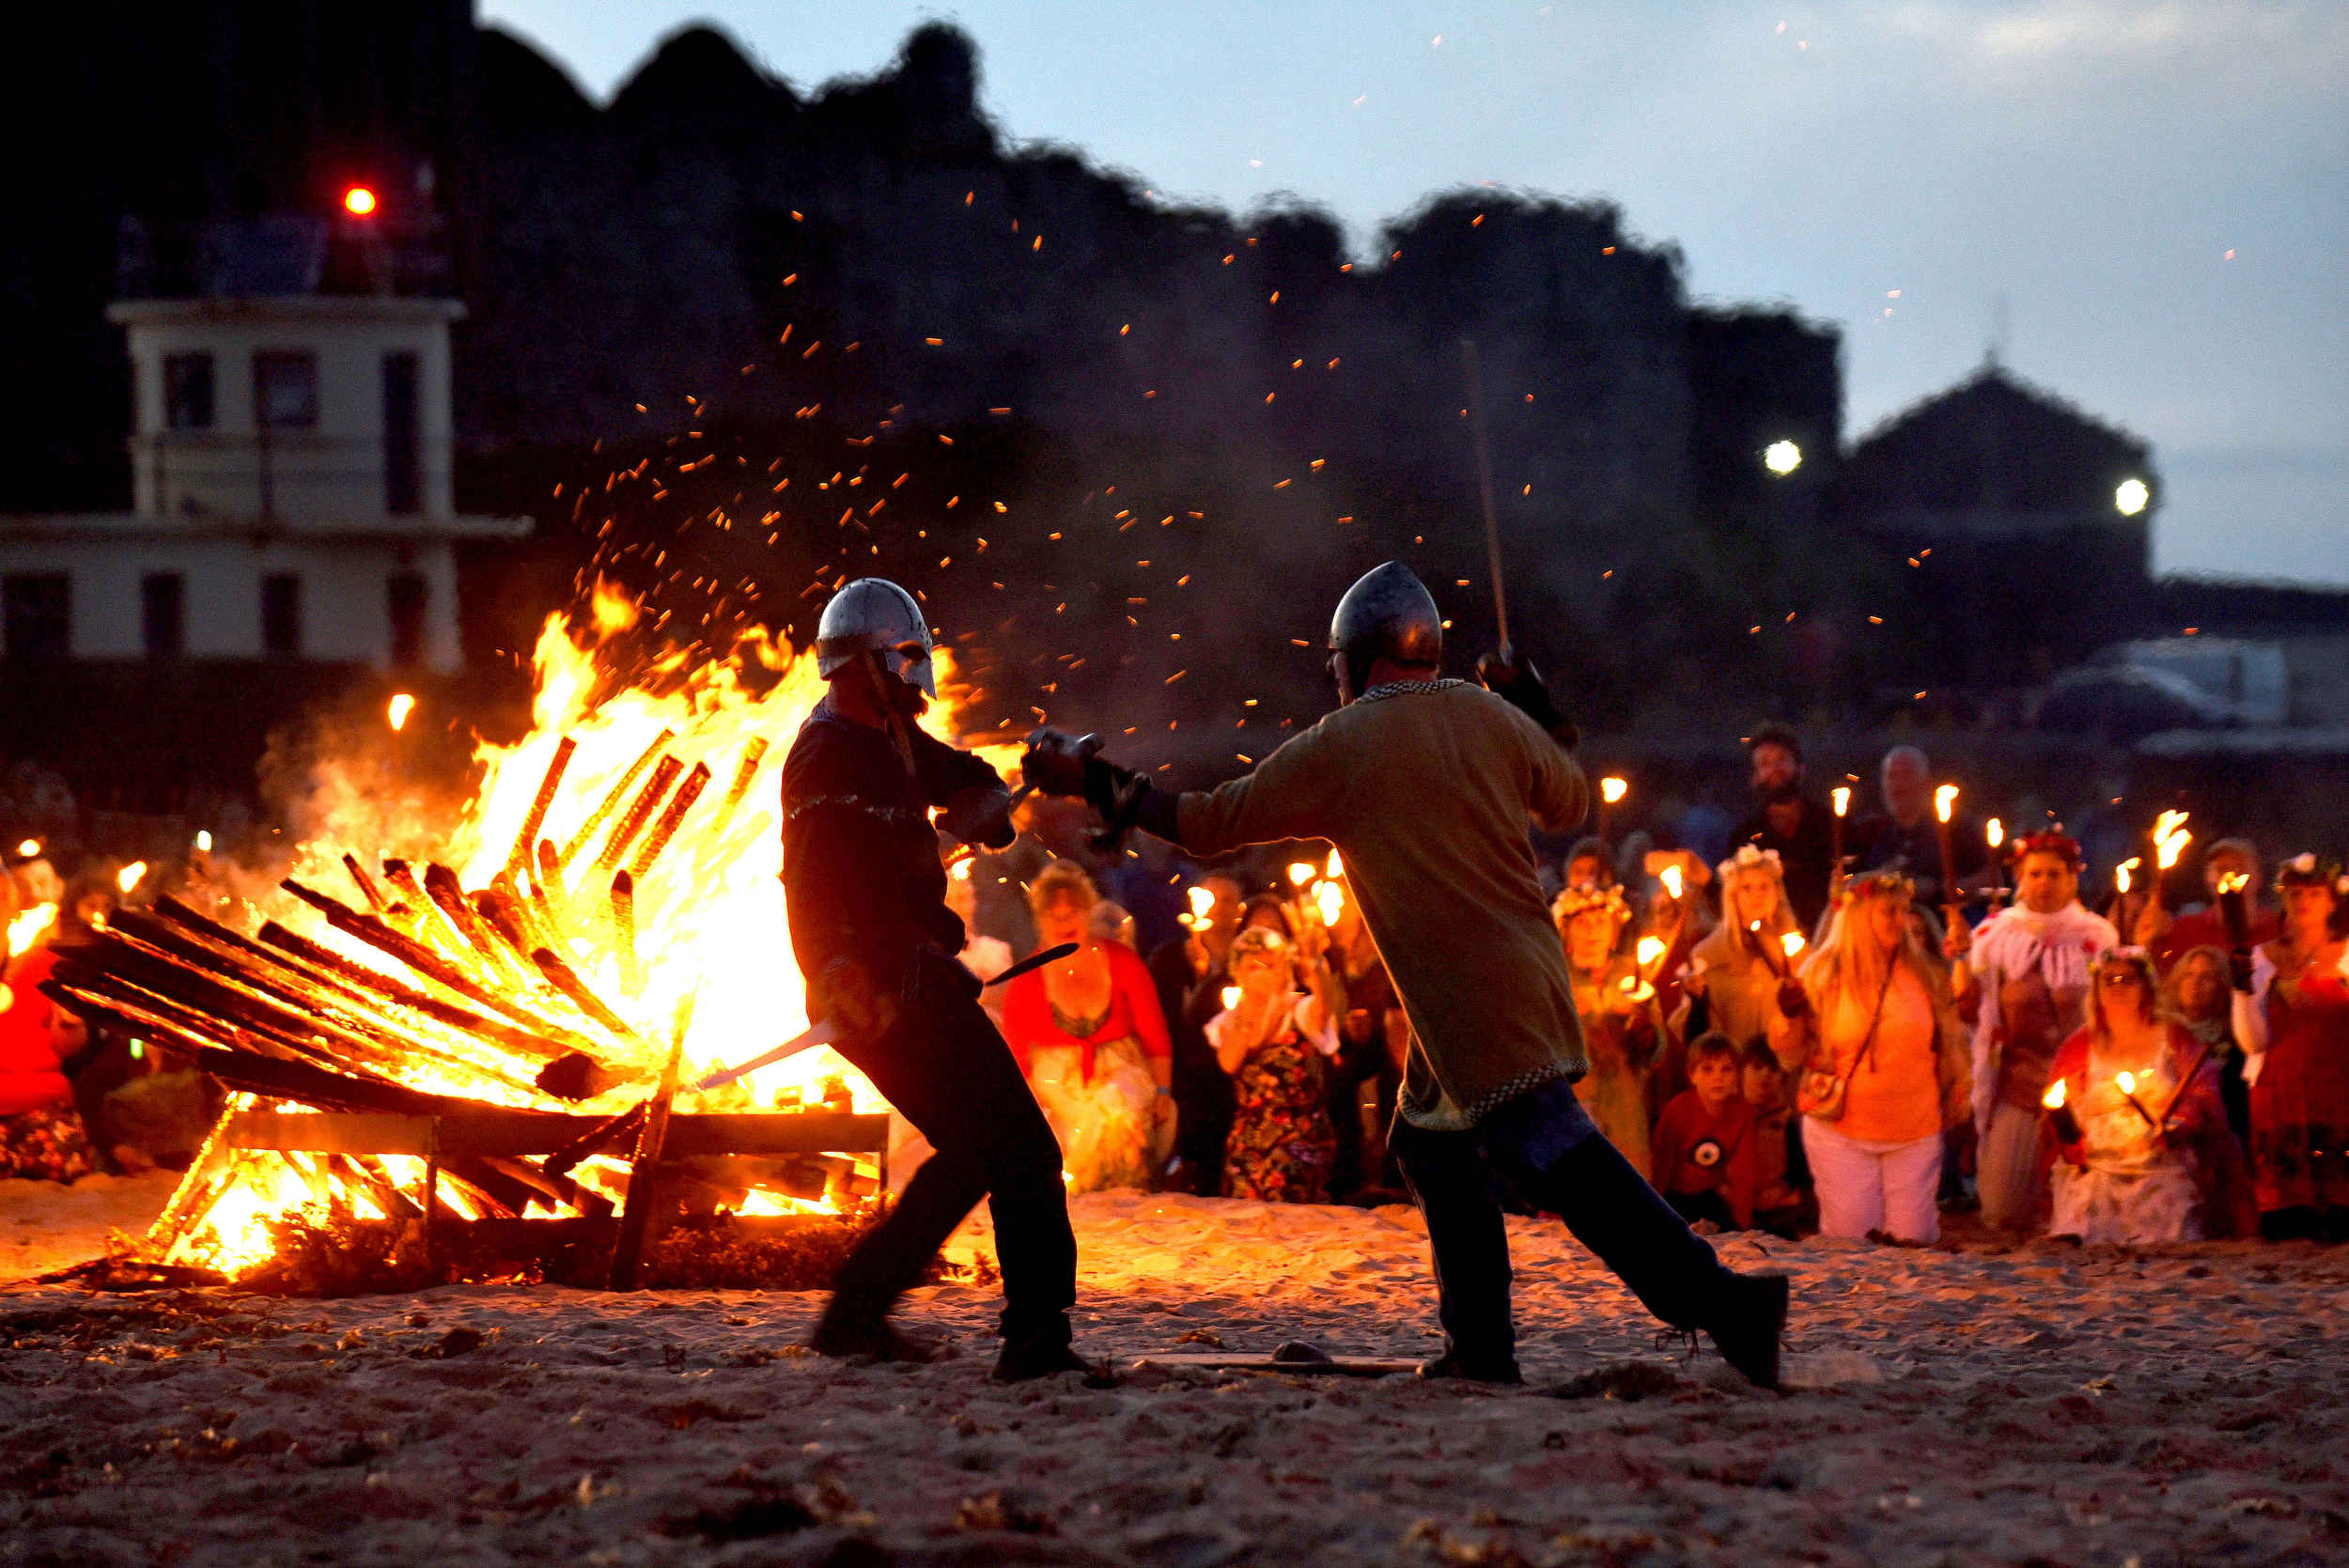 Nominated champions representing Winter and Summer fight for supremacy during the Oie Voaldyn fire festival in Peel -